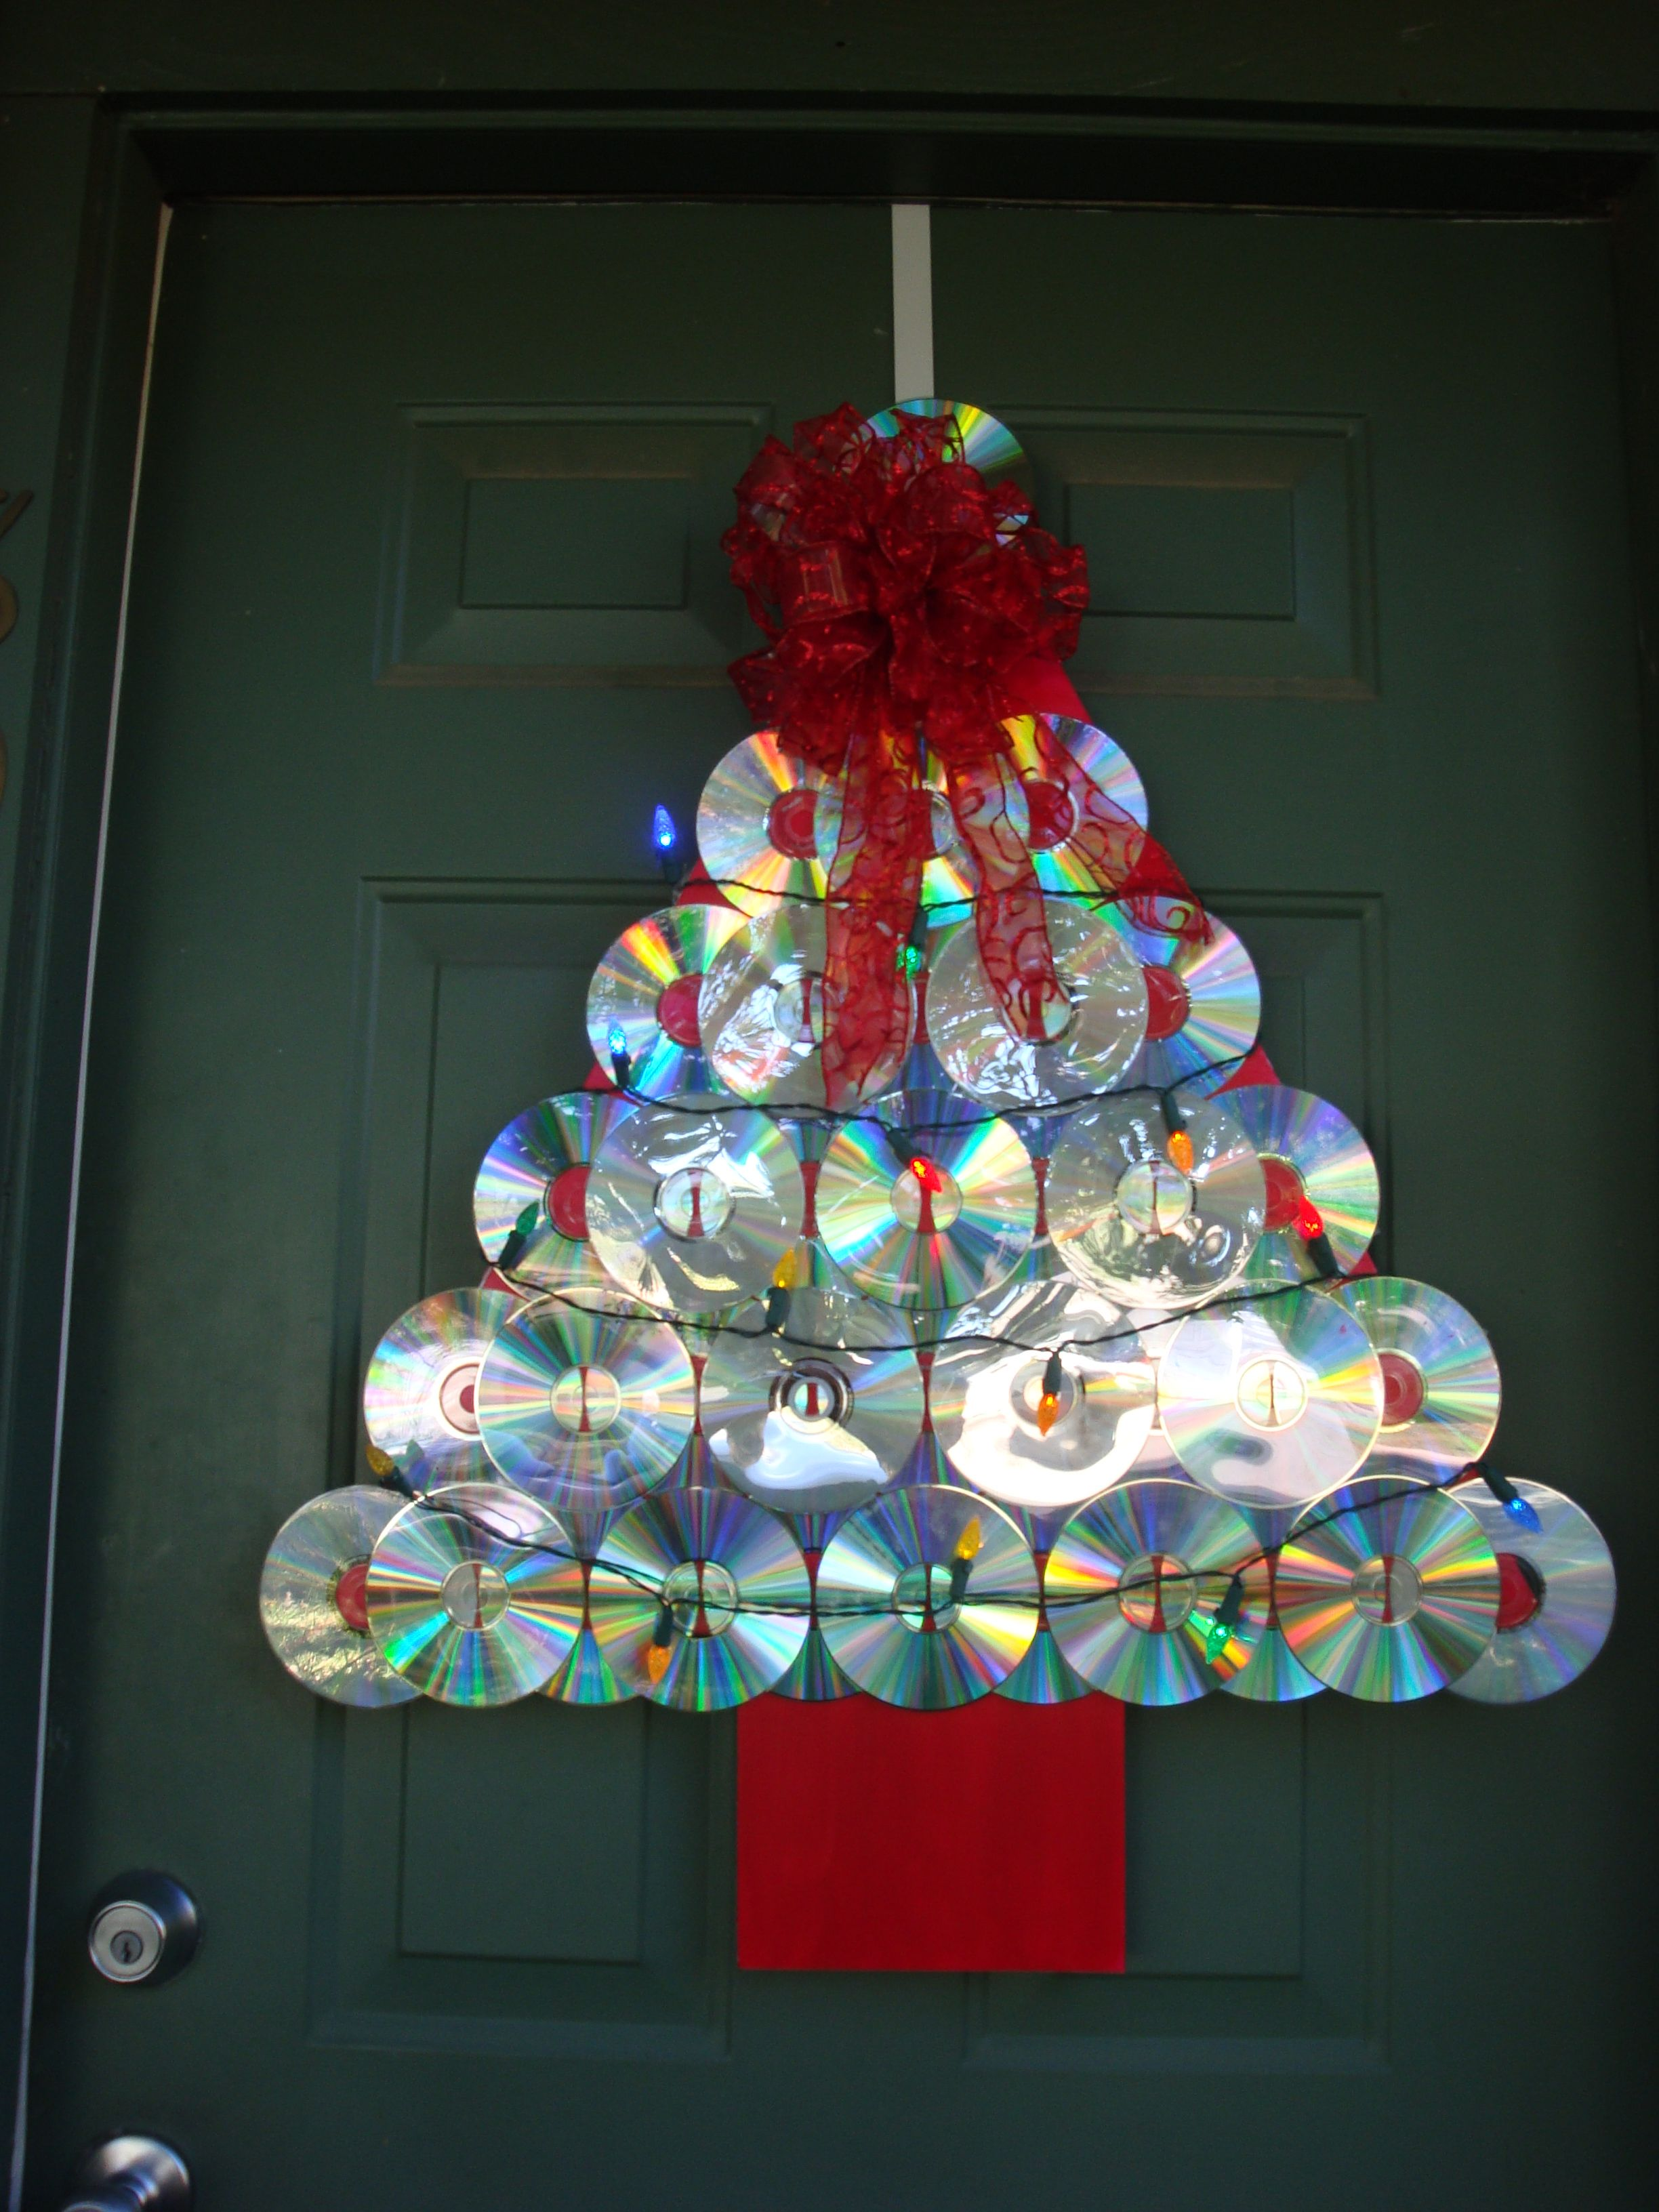 Recycled Christmas Craft Ideas Part - 23: Christmas Classroom Door Decorations | Caveat: This Project May Actually  Fall Under The Category Of